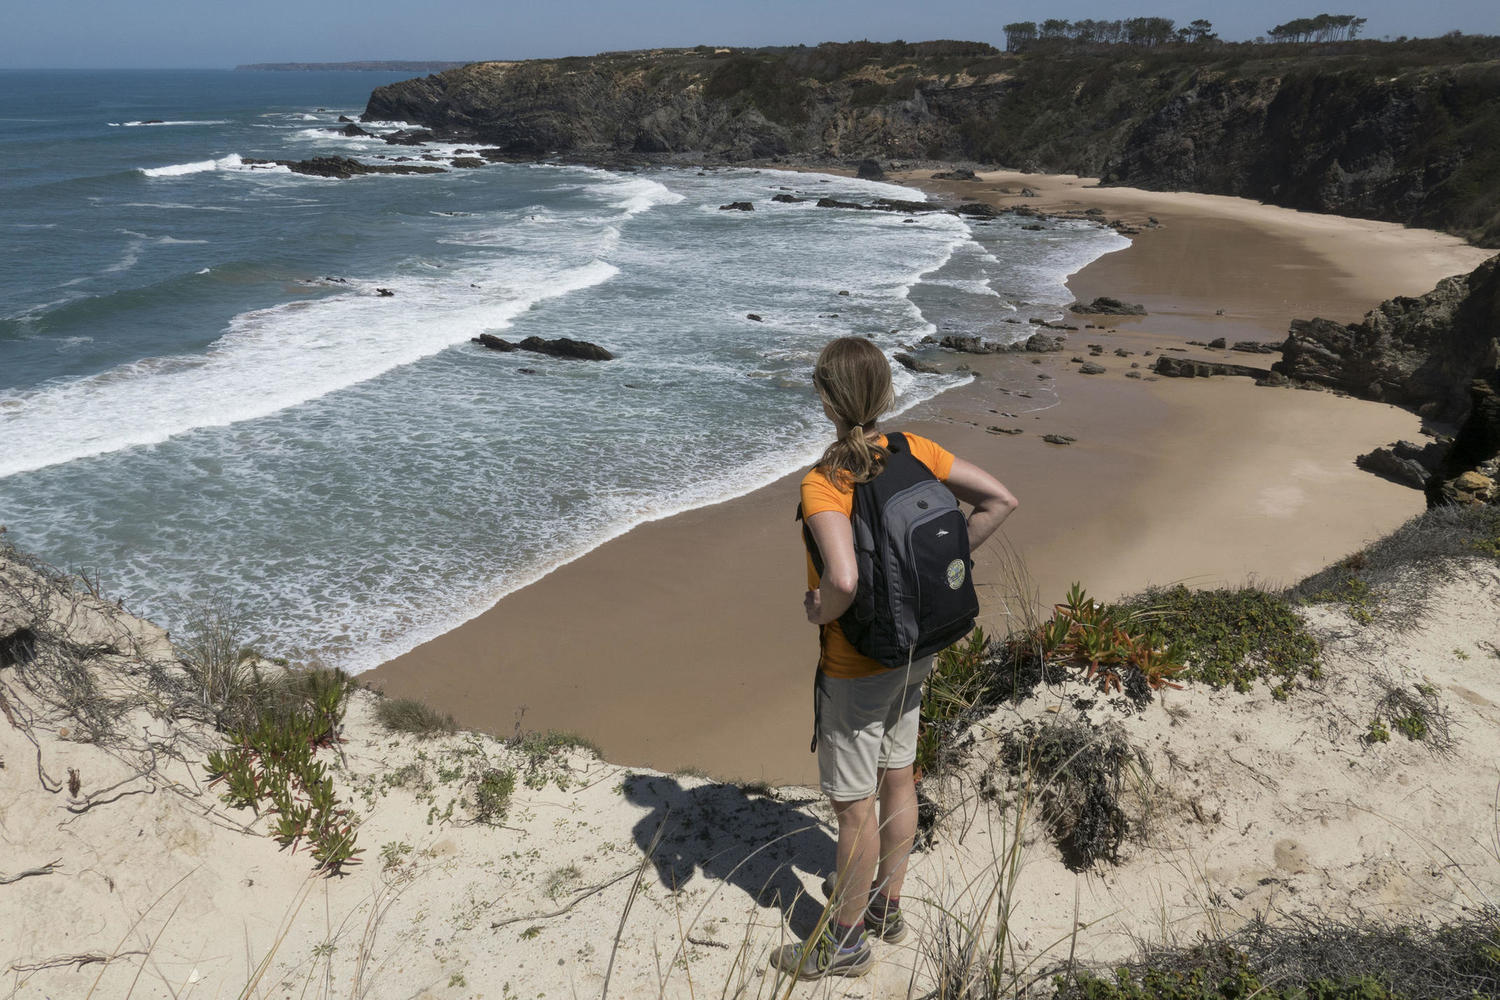 A stop to enjoy the views along the Rota Vicentina